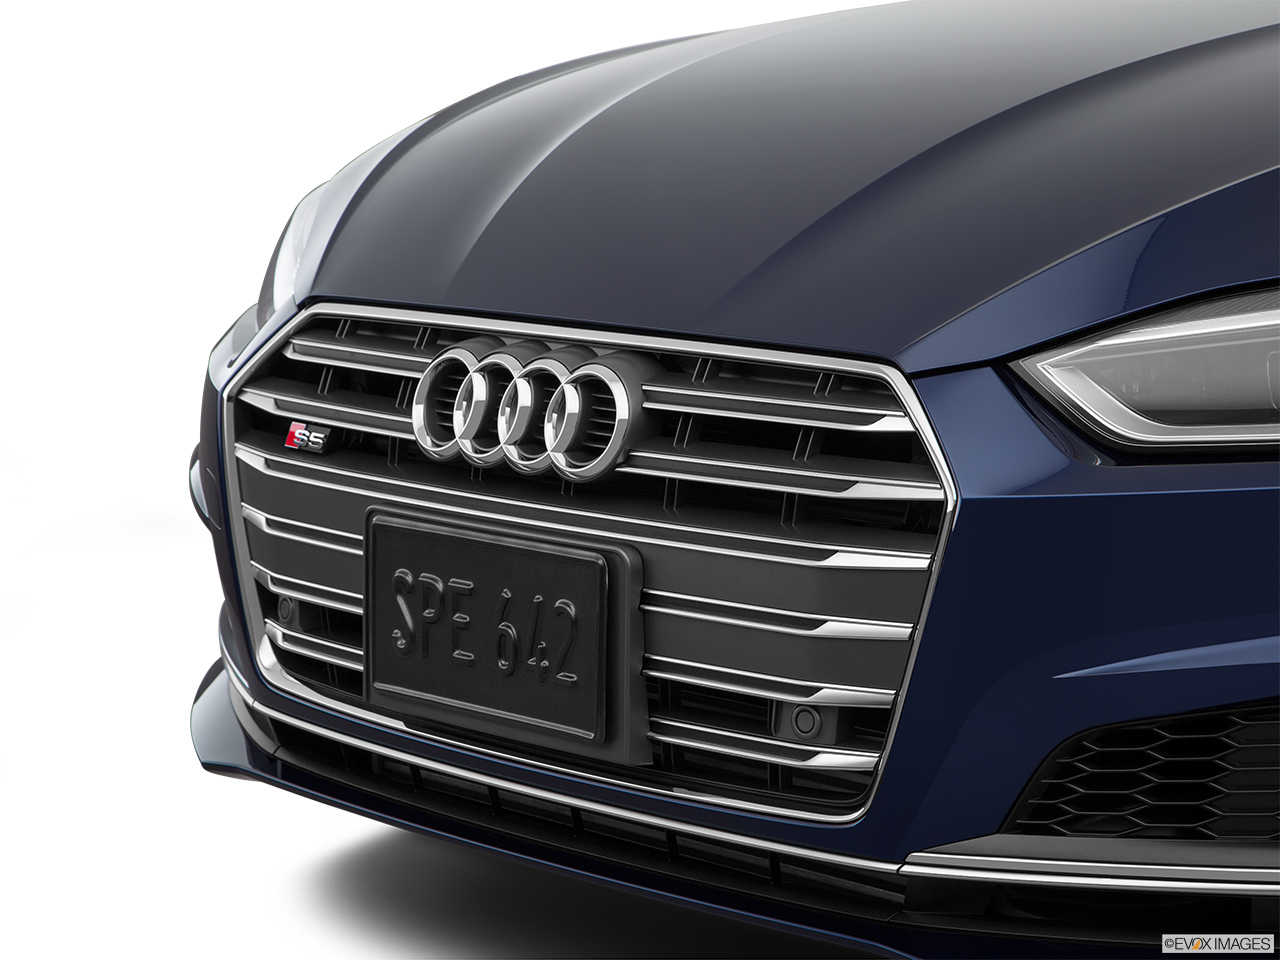 2019 Audi S5 Sportback Premium Plus 3.0 TFSI Close up of Grill.